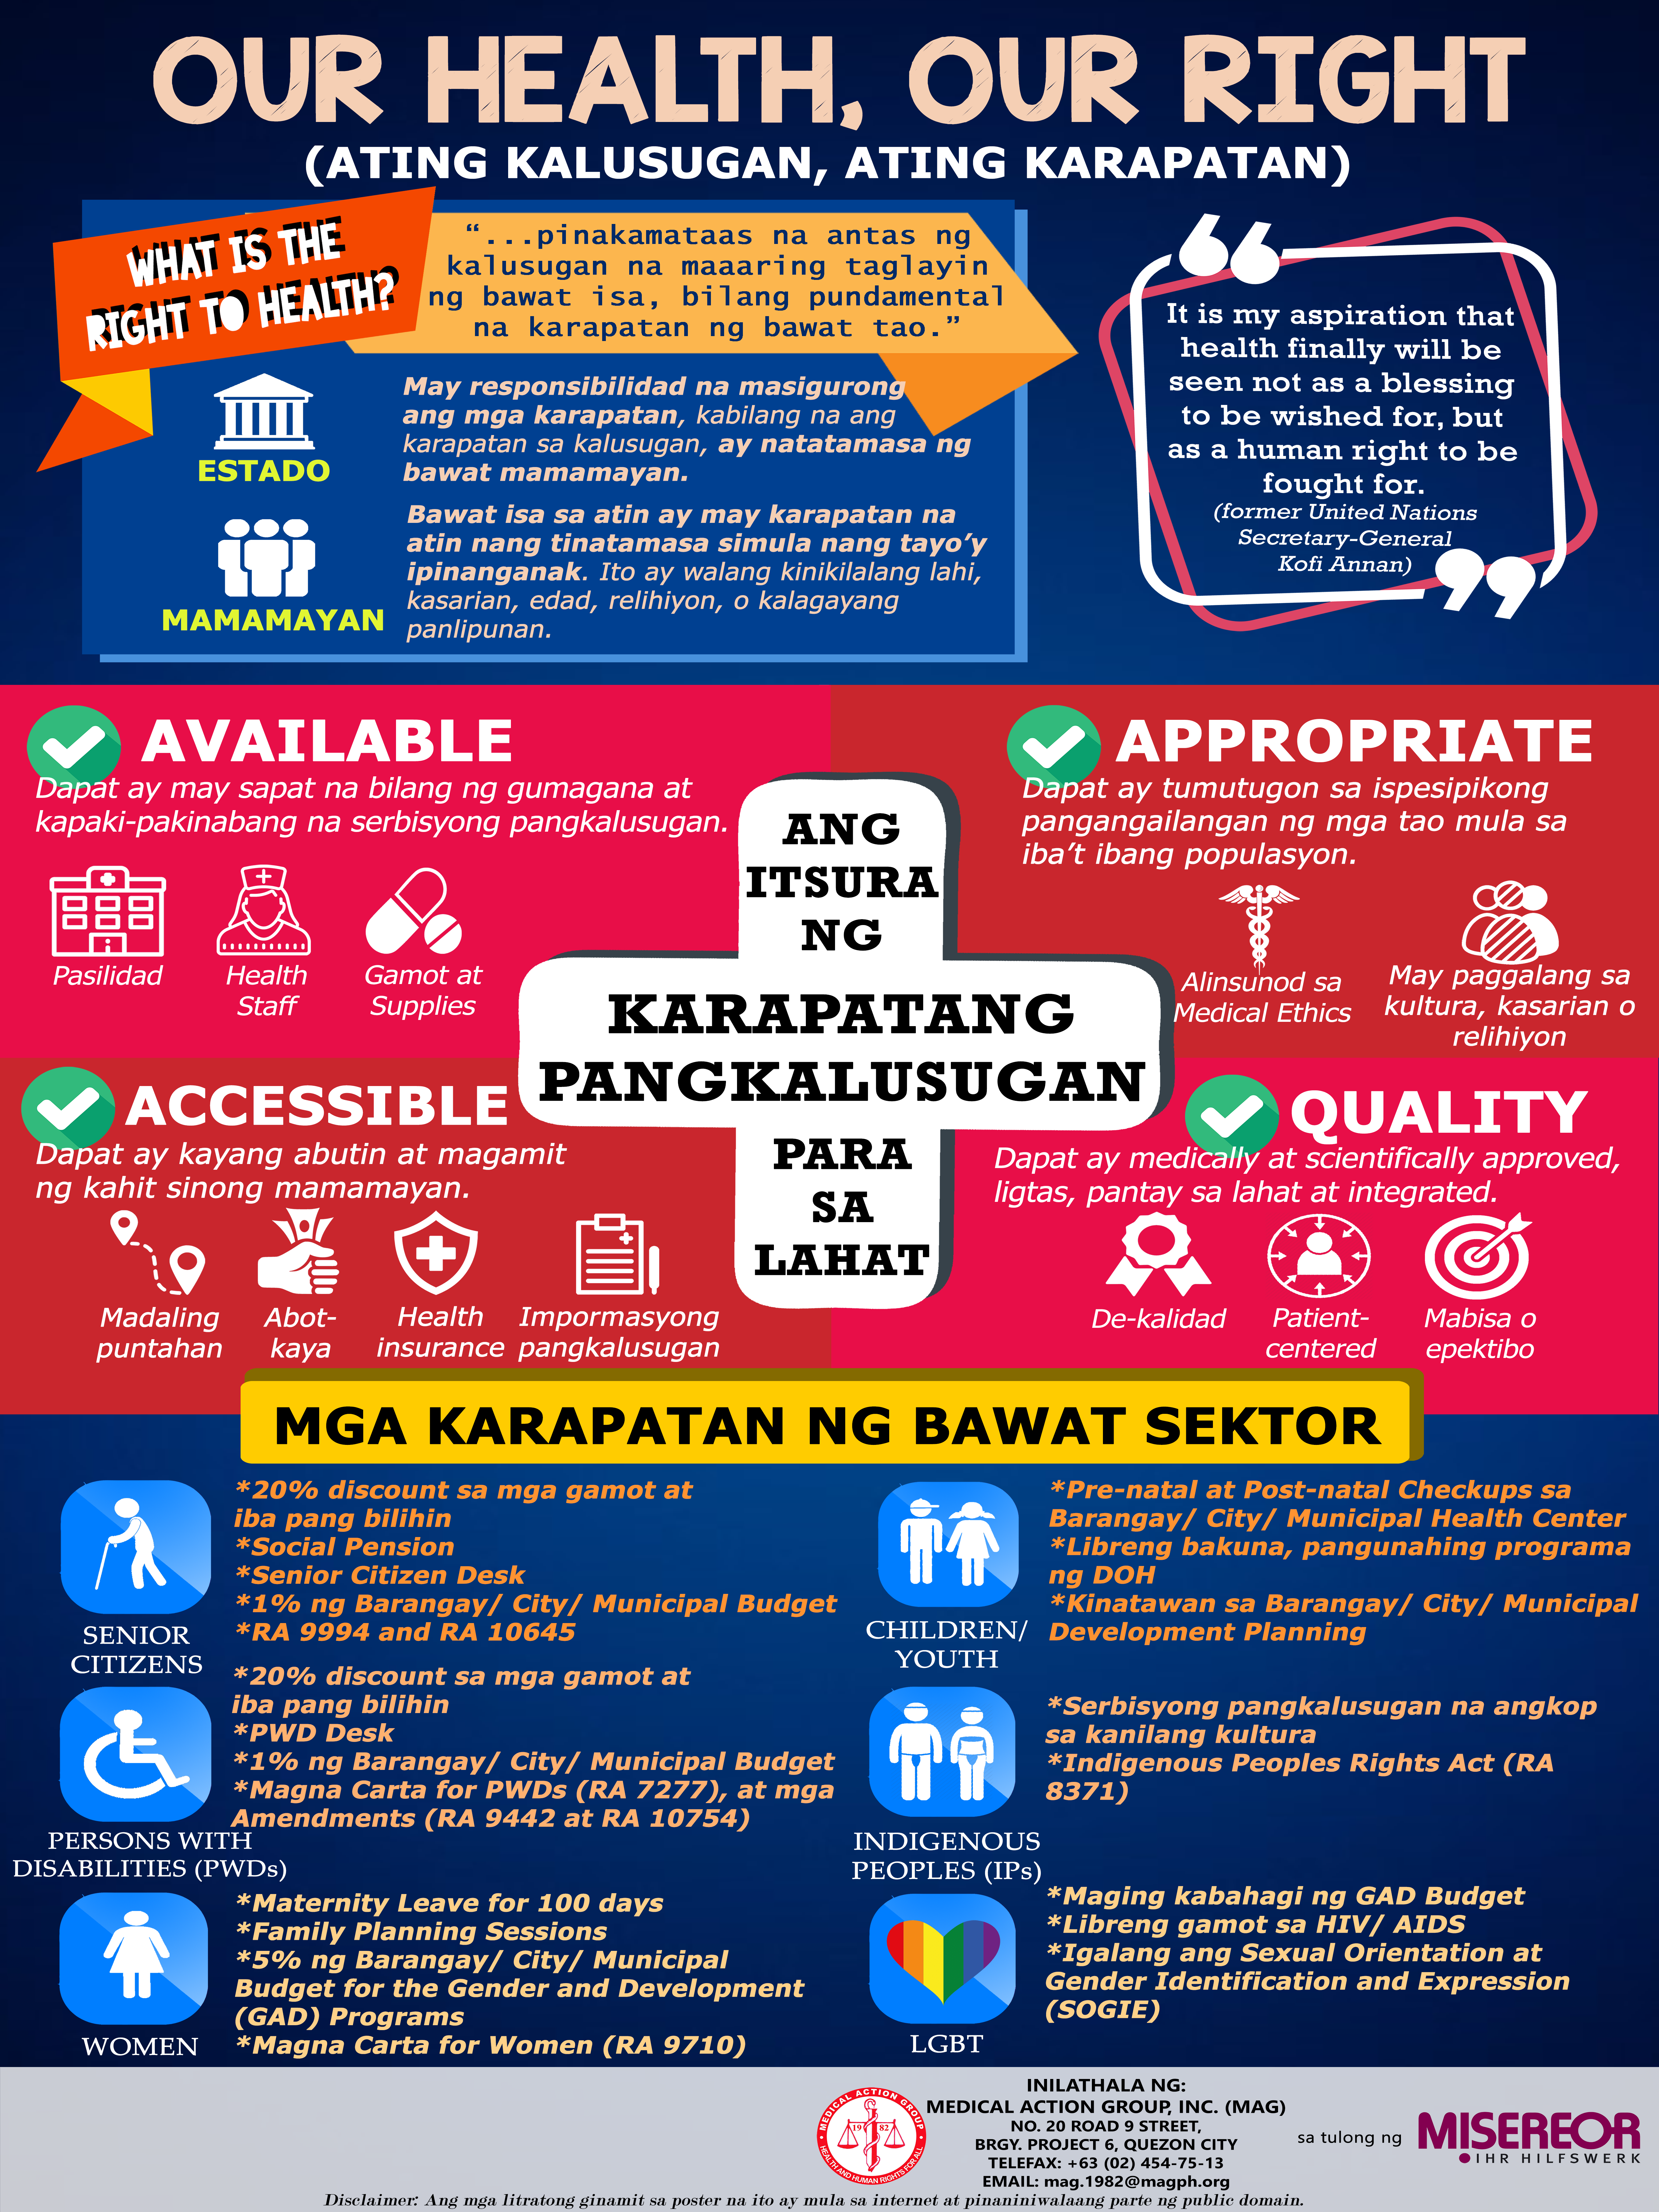 OUR HEALTH, OUR RIGHT (Poster on Right to Health)